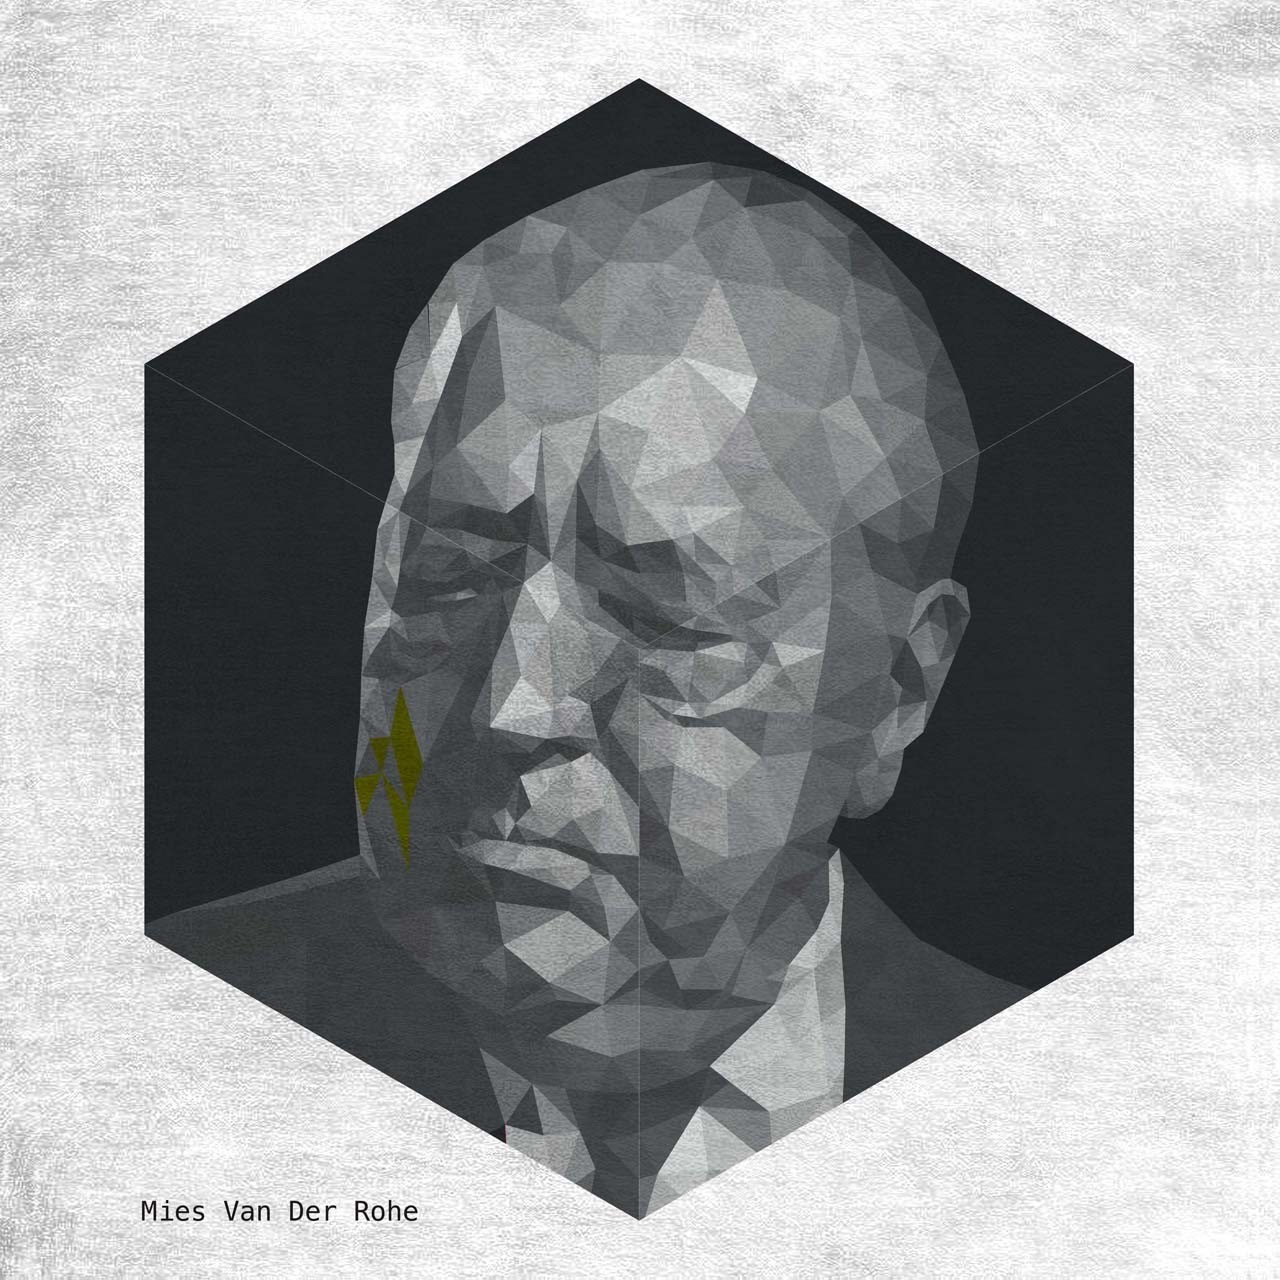 MIES VAN DER ROHE. Image Courtesy of Yannick Martin